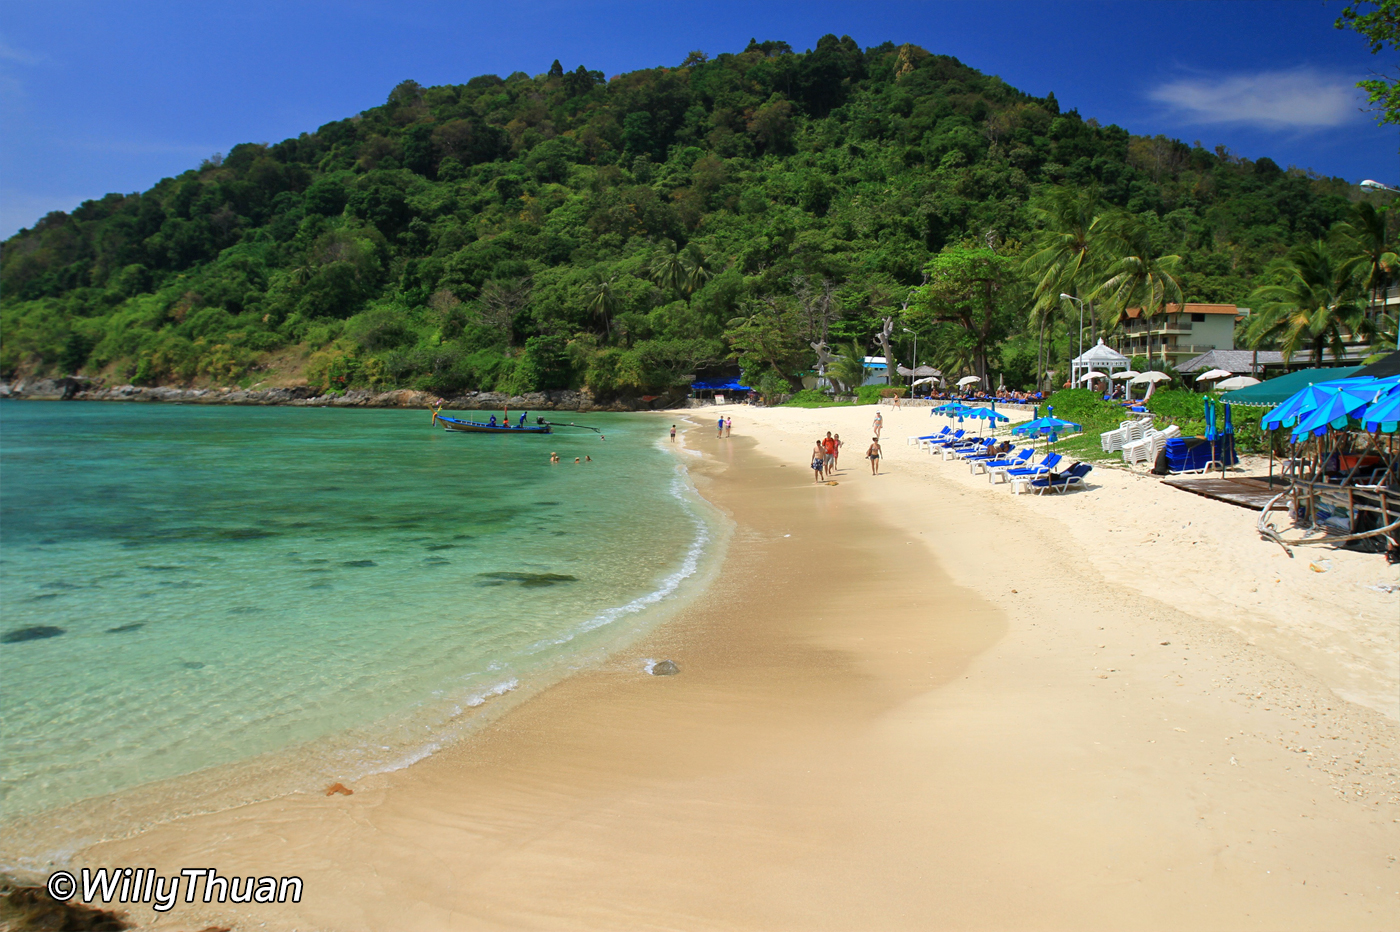 Phuket Travel Guide - Everything You Need to Know About Phuket